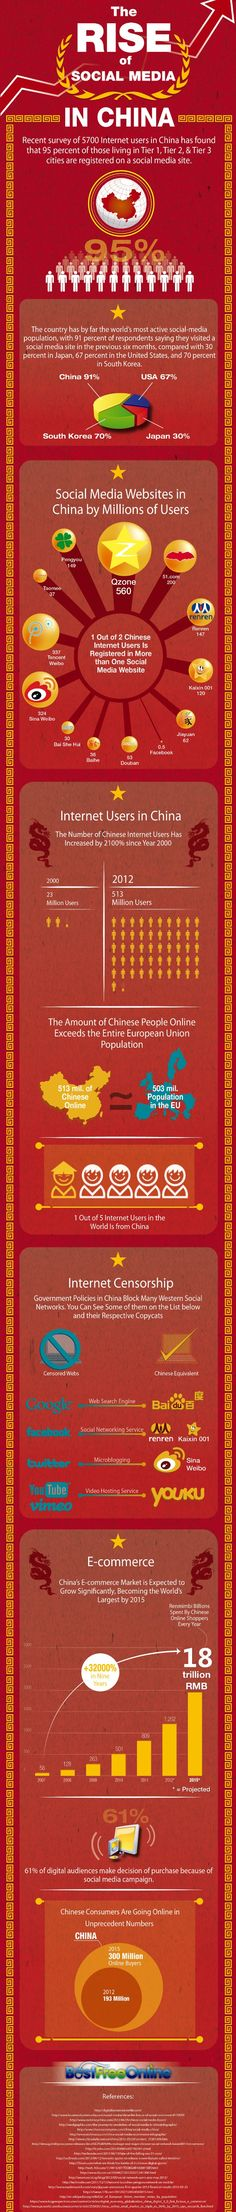 censura i multitud d'usuaris seran compatibles? - The Rise of Social Media in China Infographic 2012